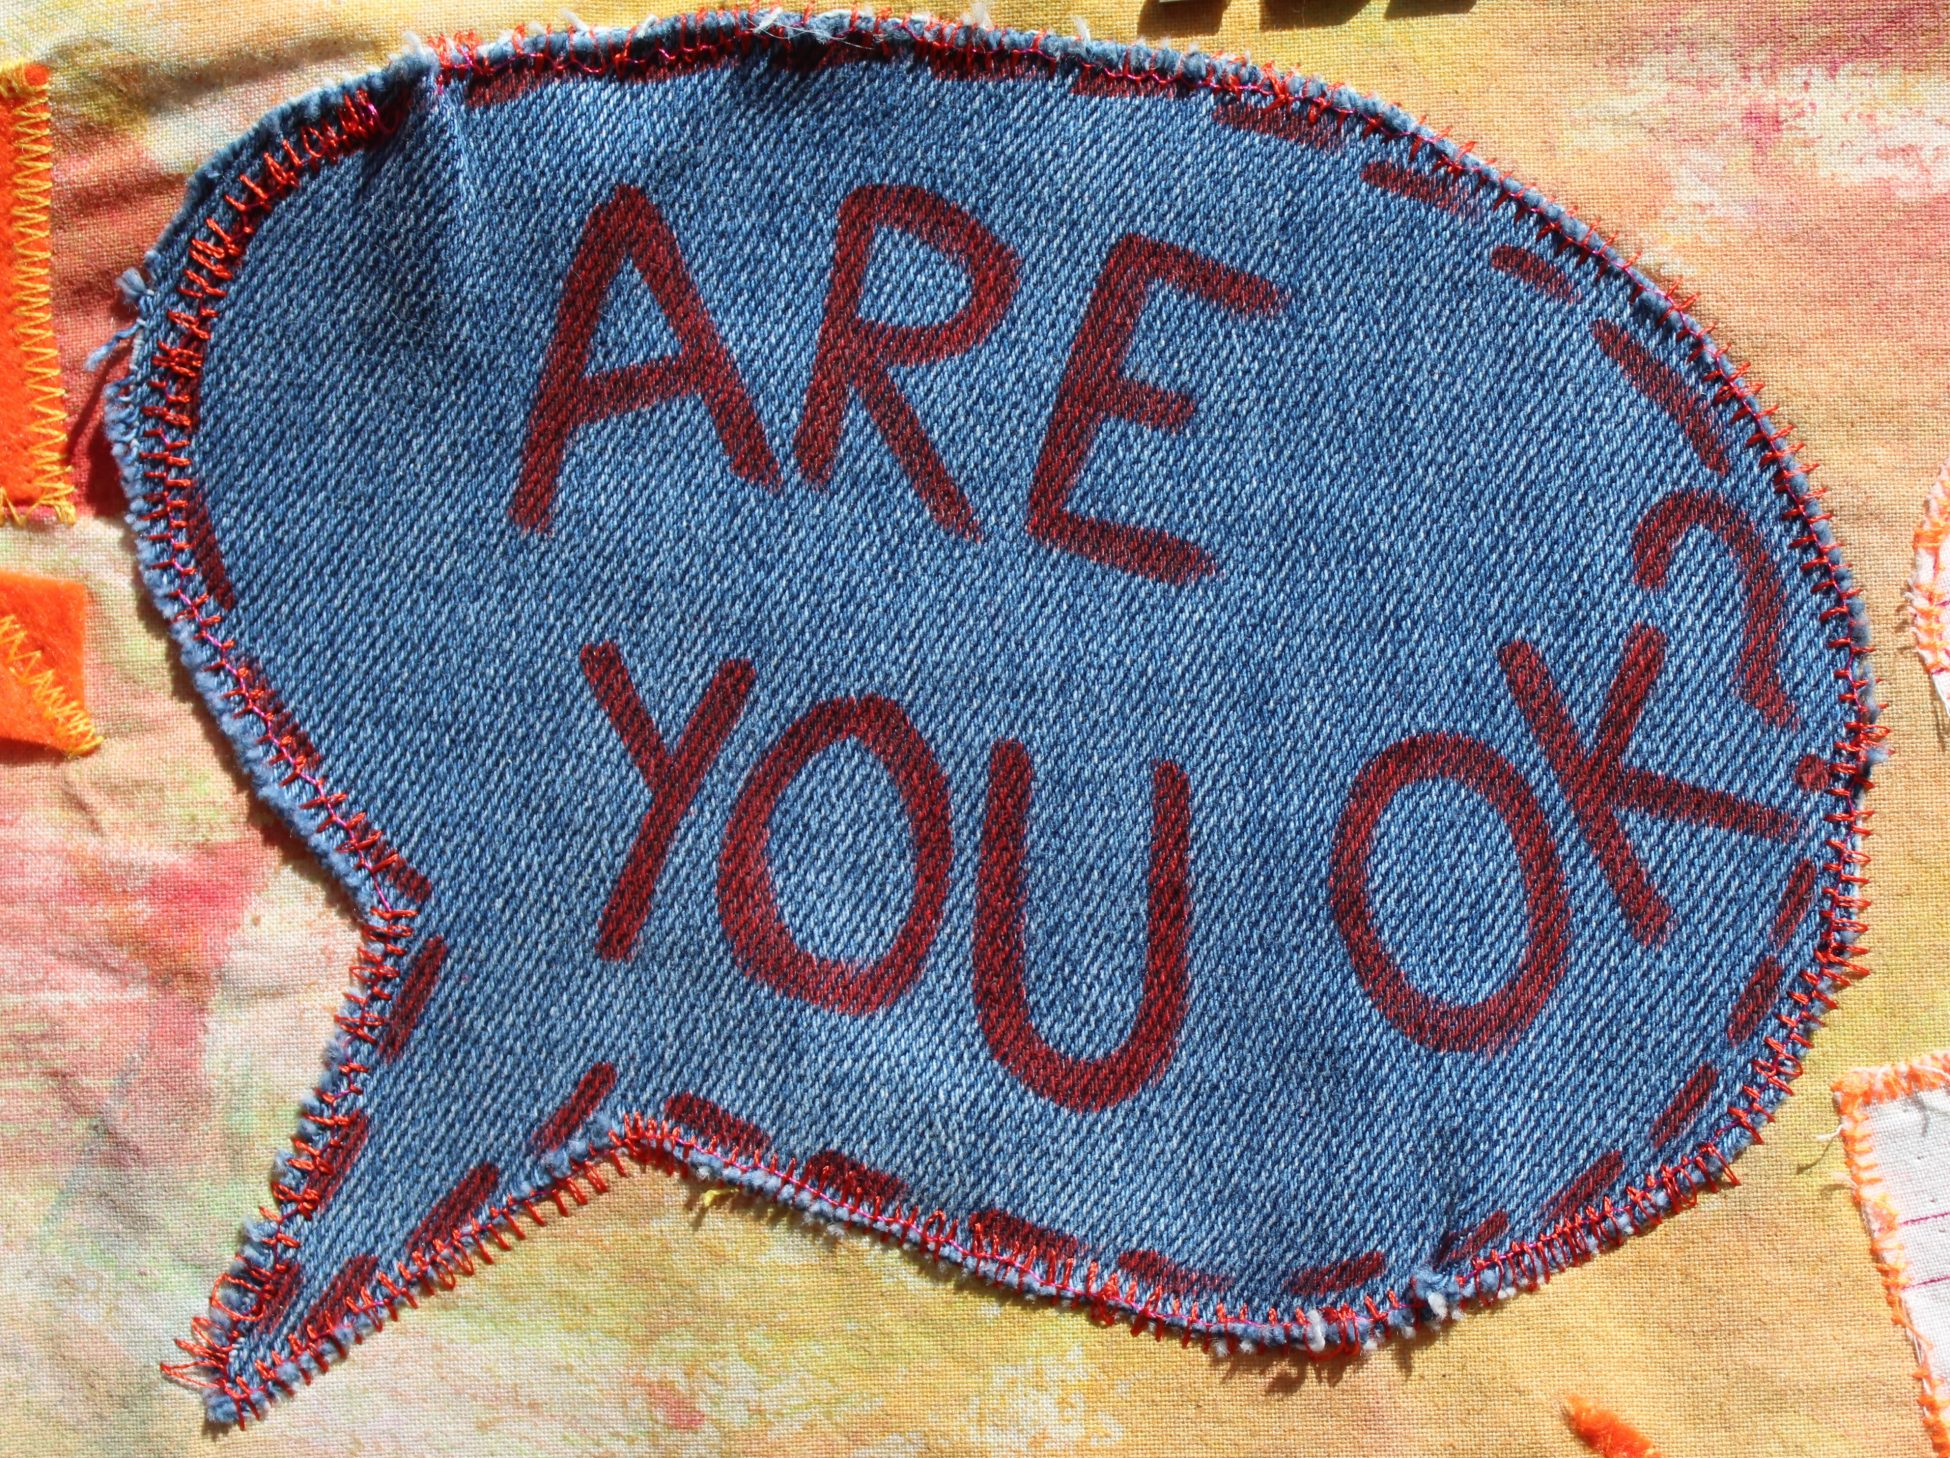 A patch of blue denim cut to the shape of a speech bubble with the phrase